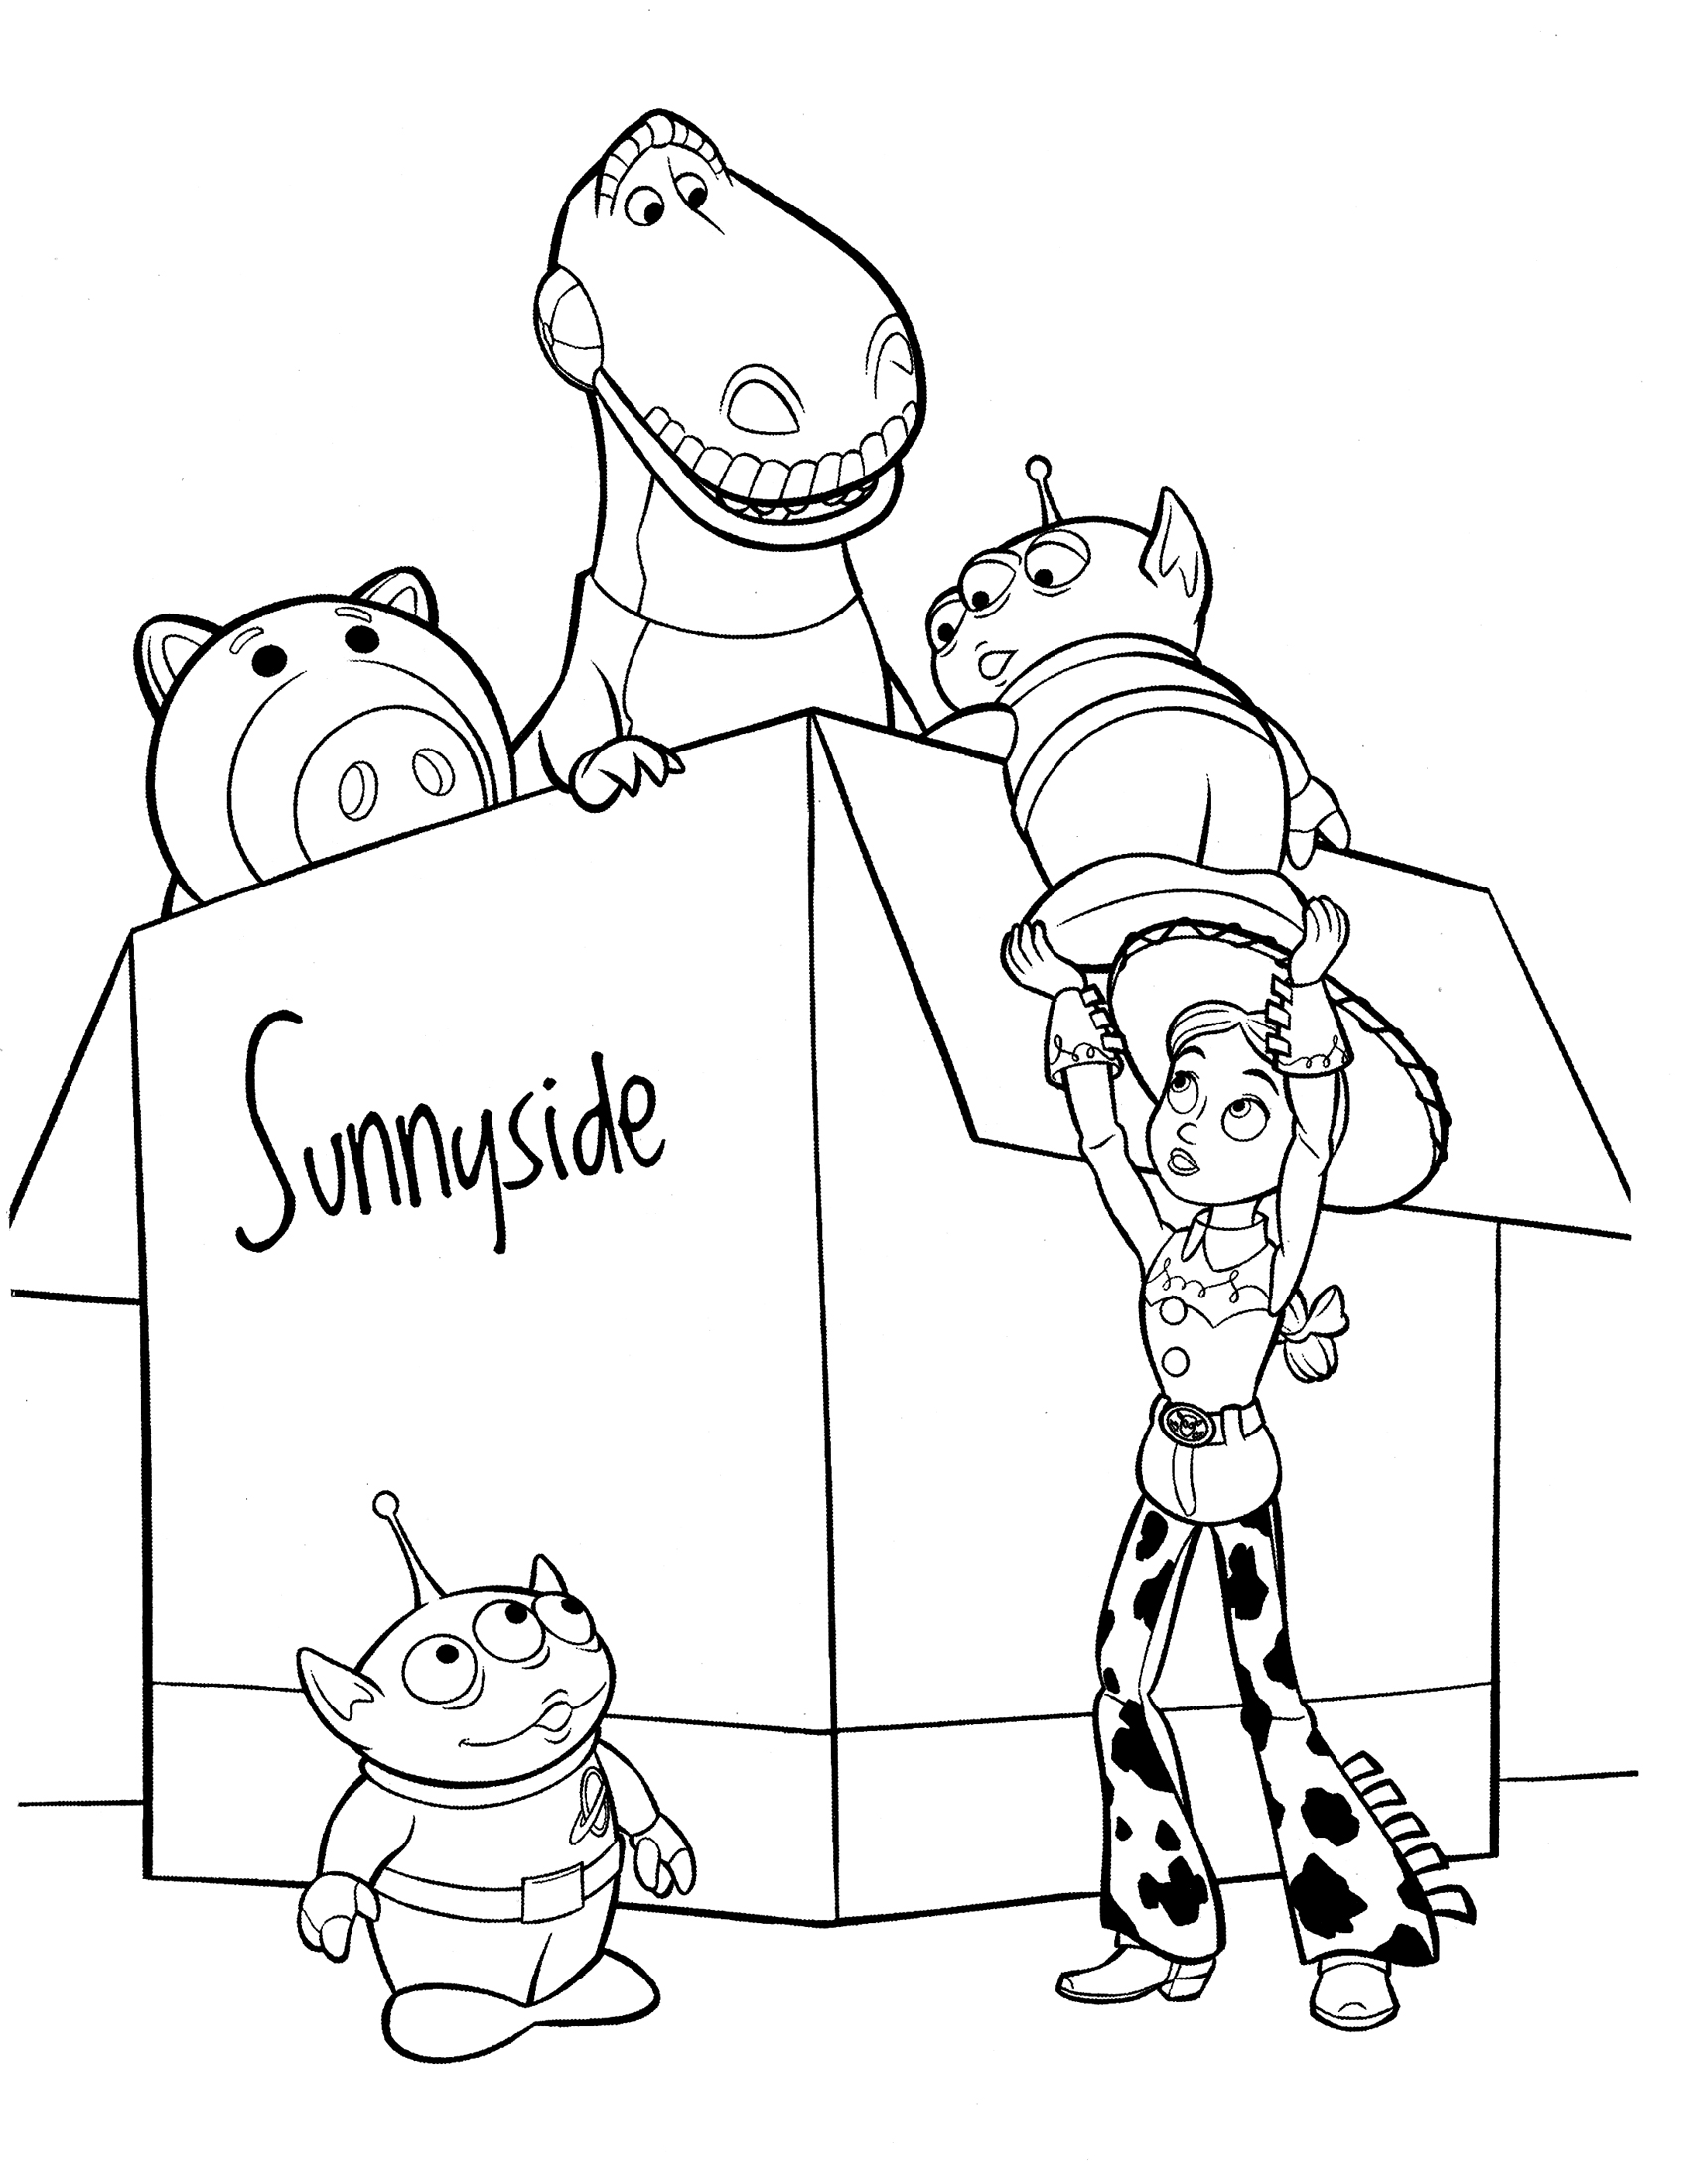 toy story 4 printable coloring pages toy story 4 coloring pages best coloring pages for kids story pages printable toy 4 coloring